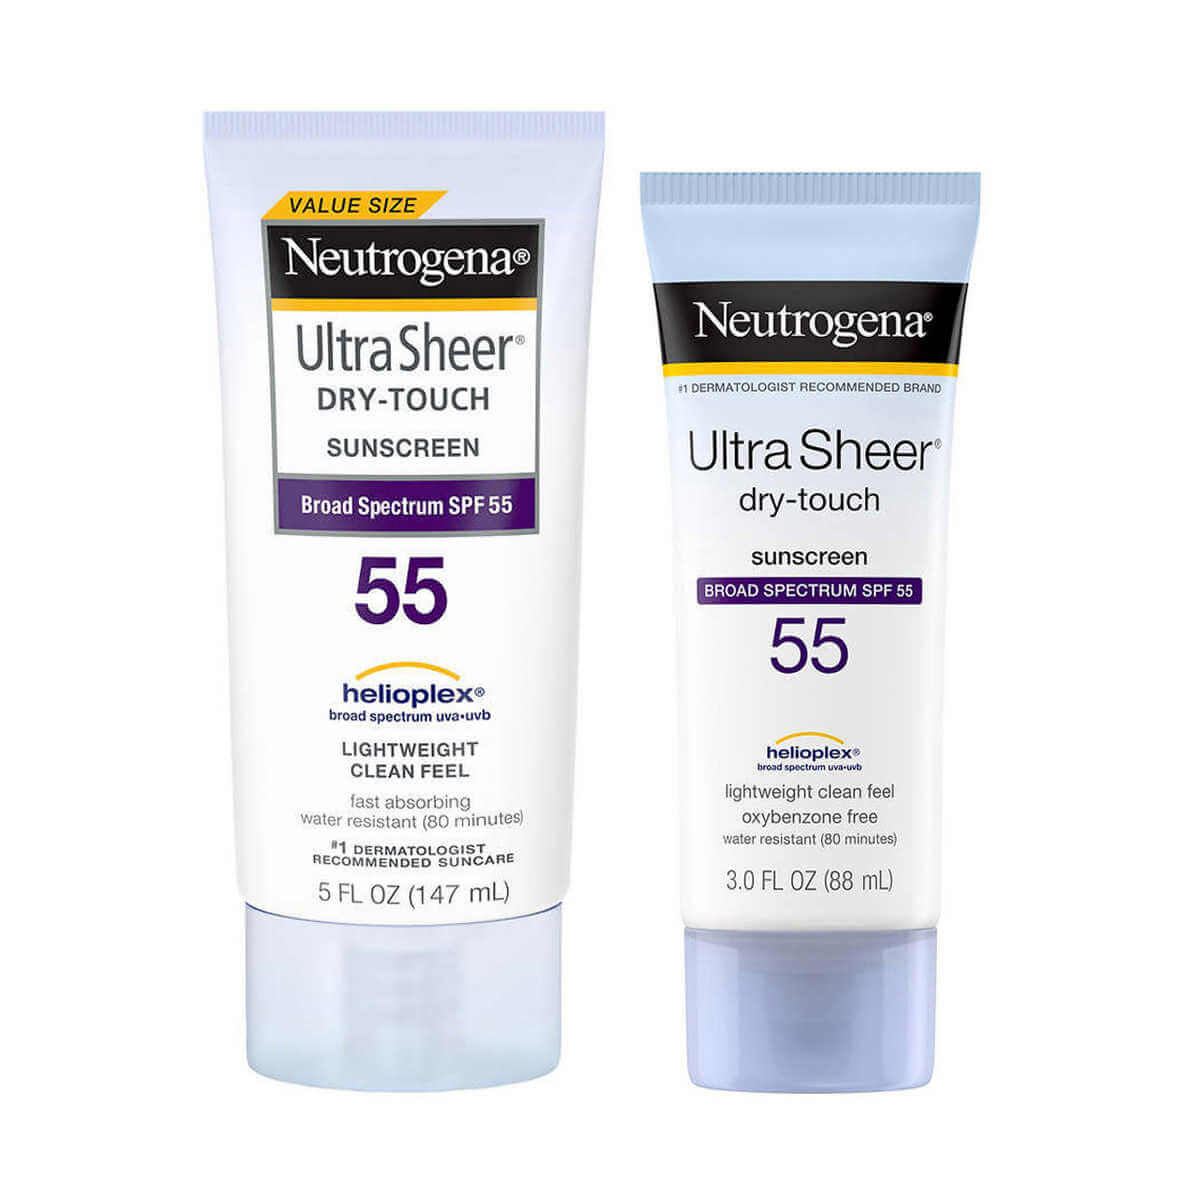 Neutrogena Sunscreen SPF 55